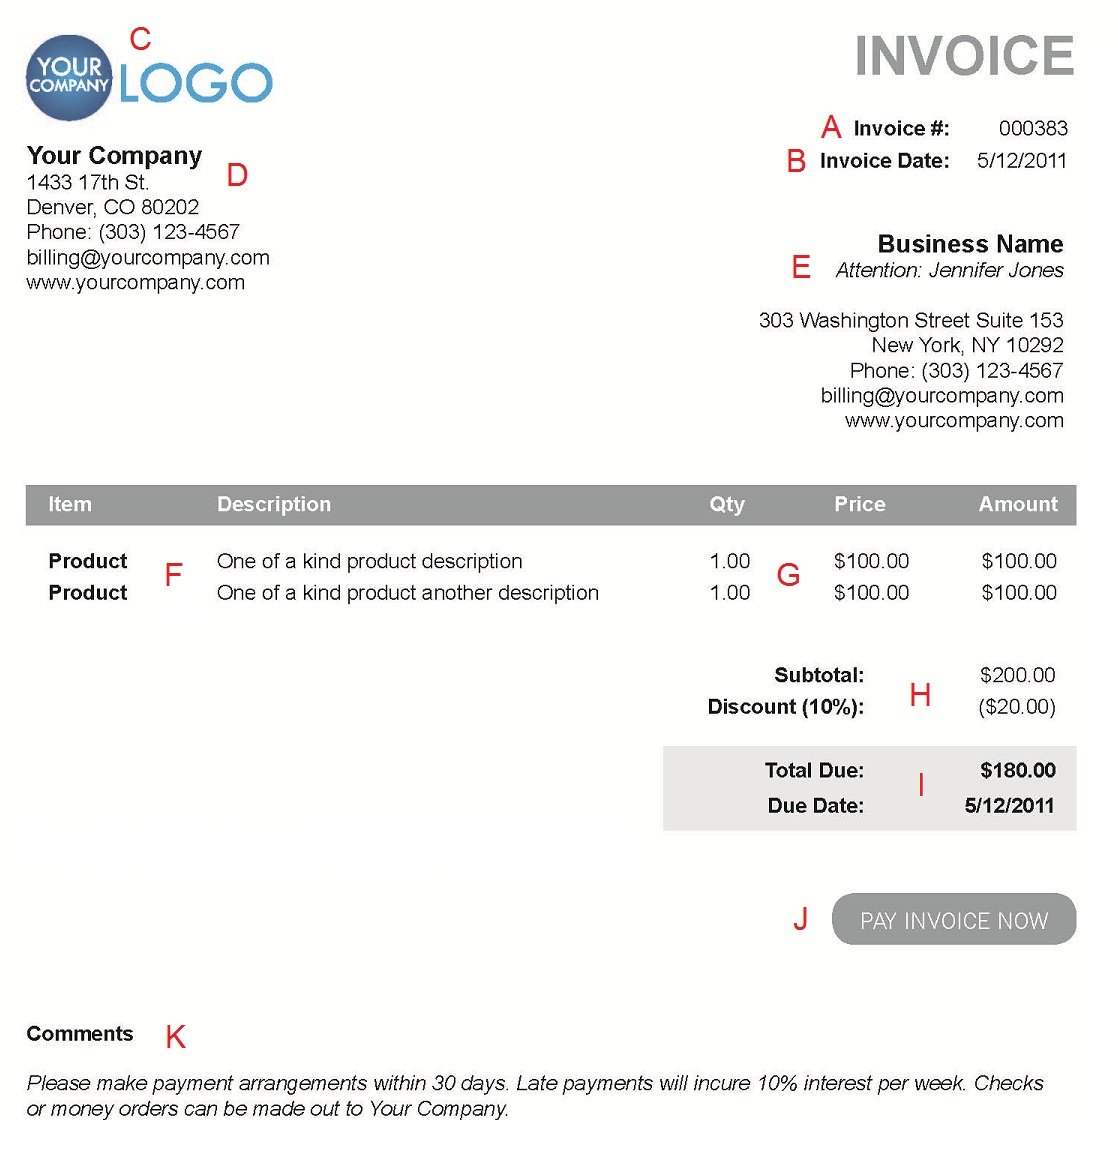 Coolmathgamesus  Sweet The  Different Sections Of An Electronic Payment Invoice With Glamorous A  With Adorable Self Employment Invoice Template Also Shell Invoice In Addition Credit Invoice Sample And Incoming Invoices As Well As Receipt Invoice Template Free Additionally Invoice Software Online From Paysimplecom With Coolmathgamesus  Glamorous The  Different Sections Of An Electronic Payment Invoice With Adorable A  And Sweet Self Employment Invoice Template Also Shell Invoice In Addition Credit Invoice Sample From Paysimplecom